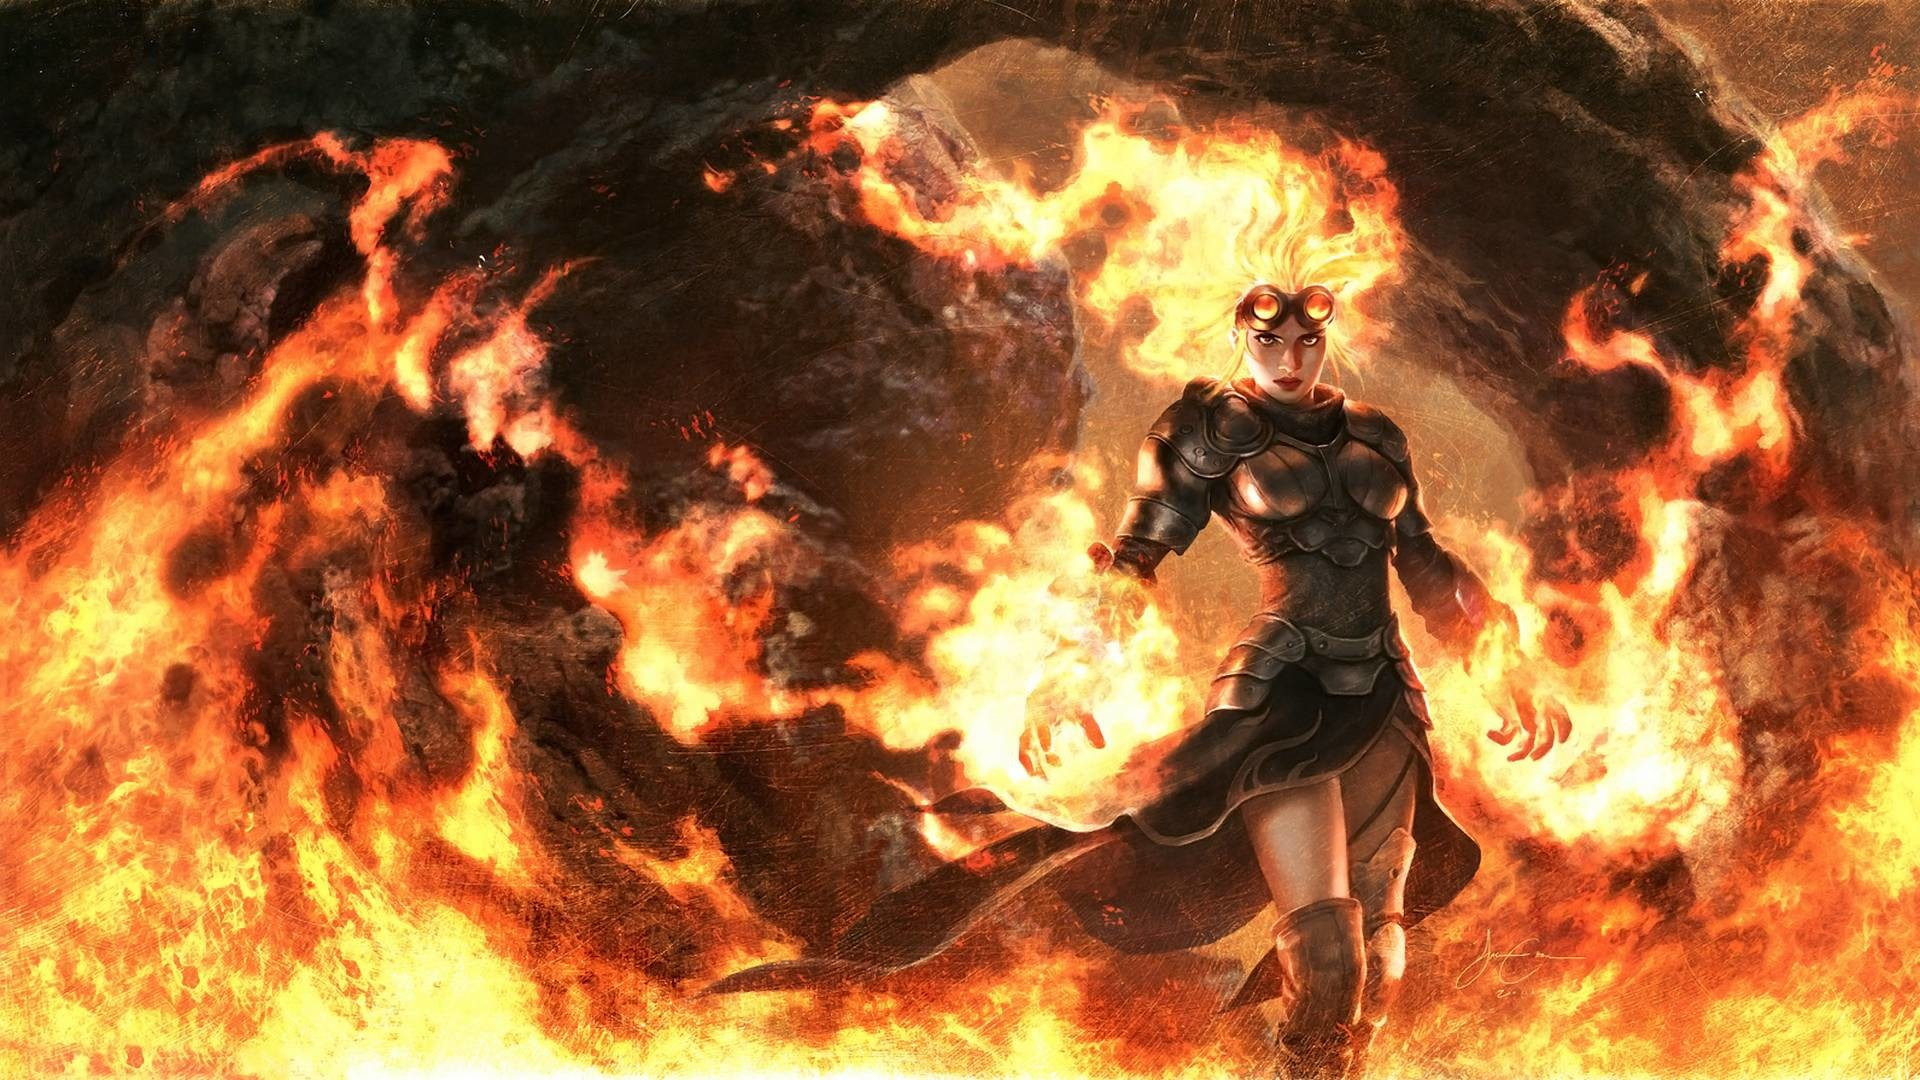 Res: 1920x1080, 100% Quality Magic The Gathering HD Wallpapers,  – free download